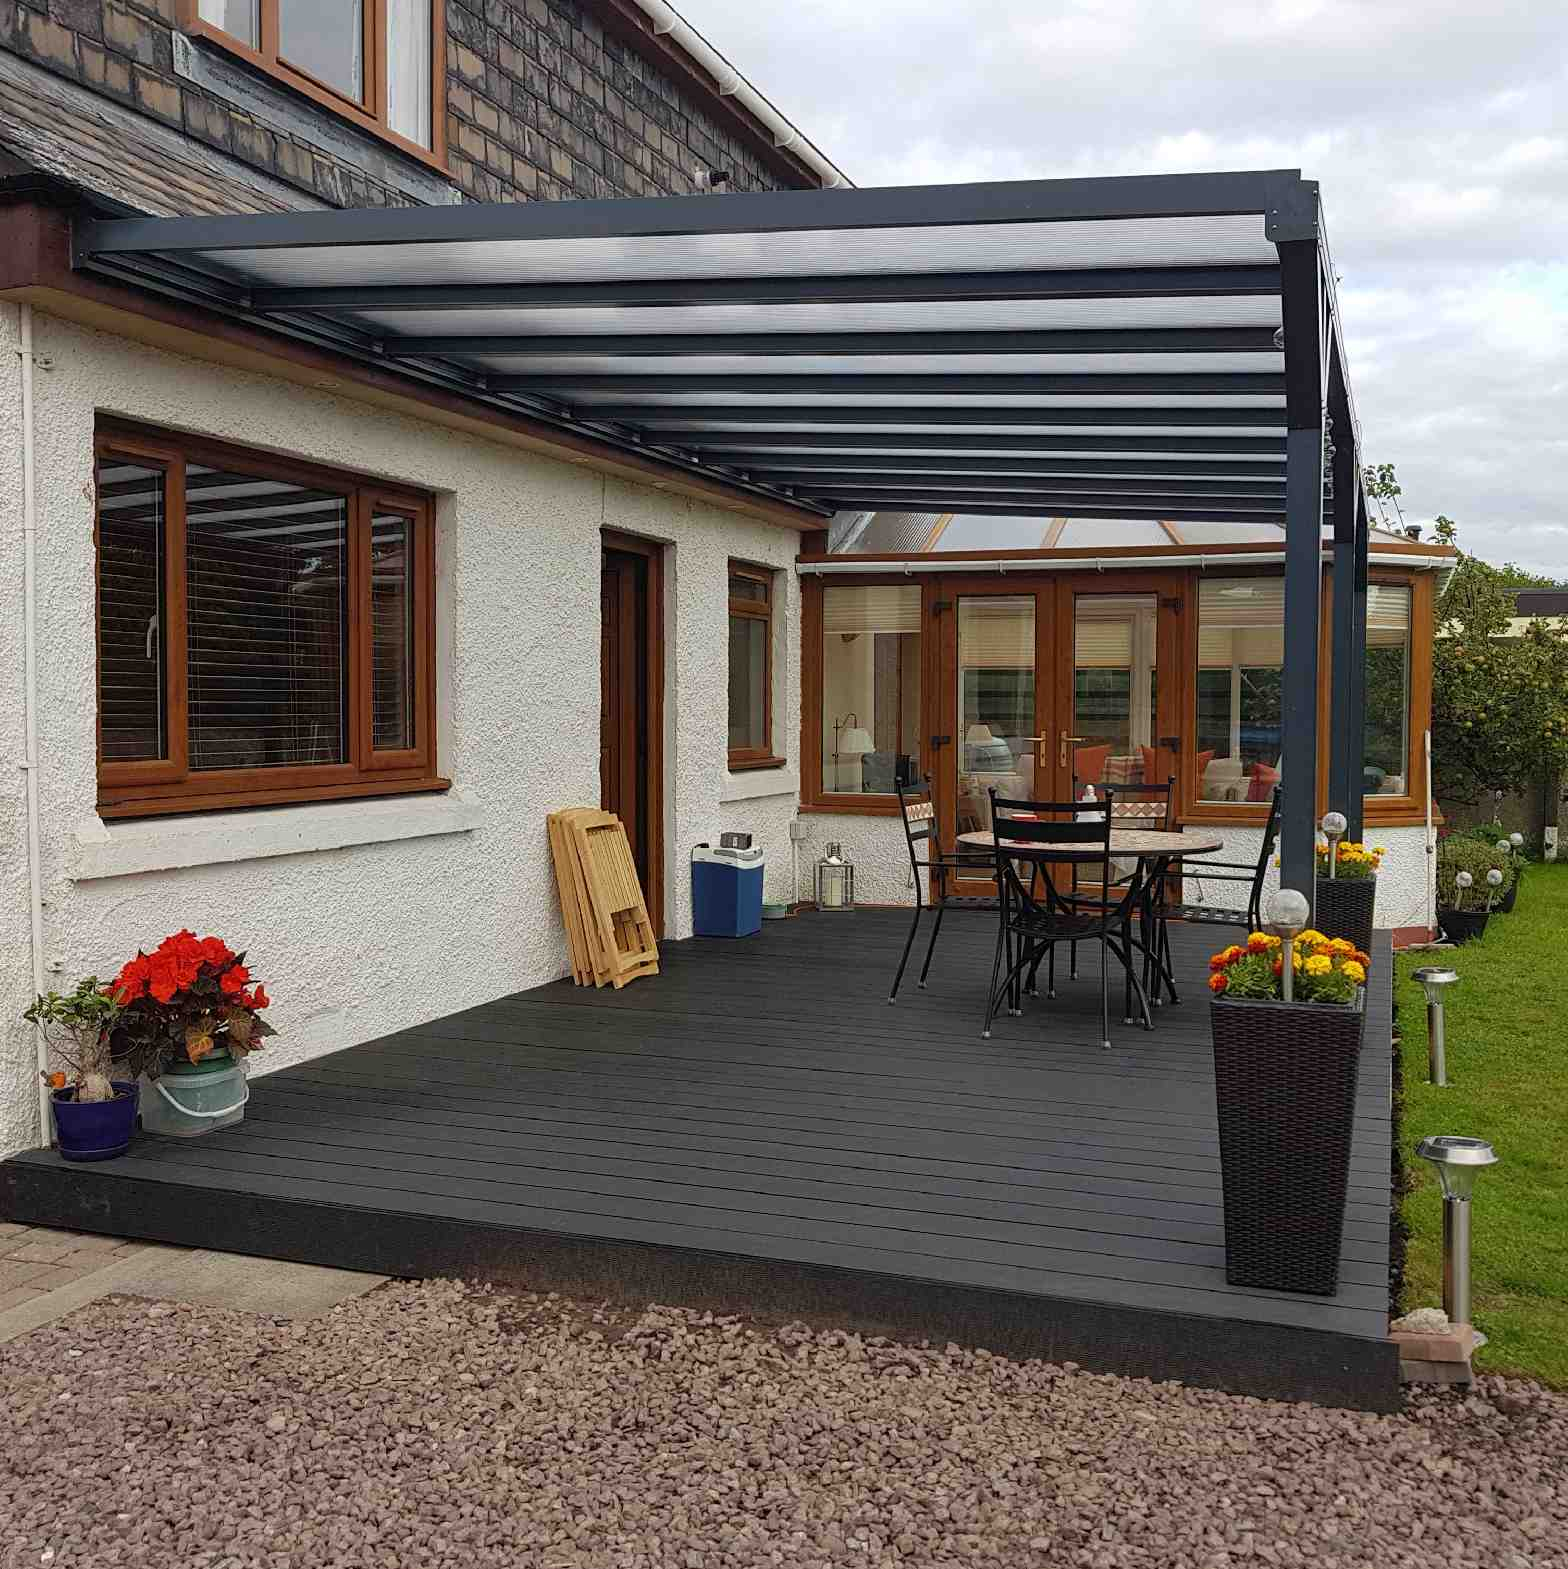 Buy Omega Verandah, Anthracite Grey, 6mm Glass Clear Plate Polycarbonate Glazing - 7.4m (W) x 4.0m (P), (4) Supporting Posts online today